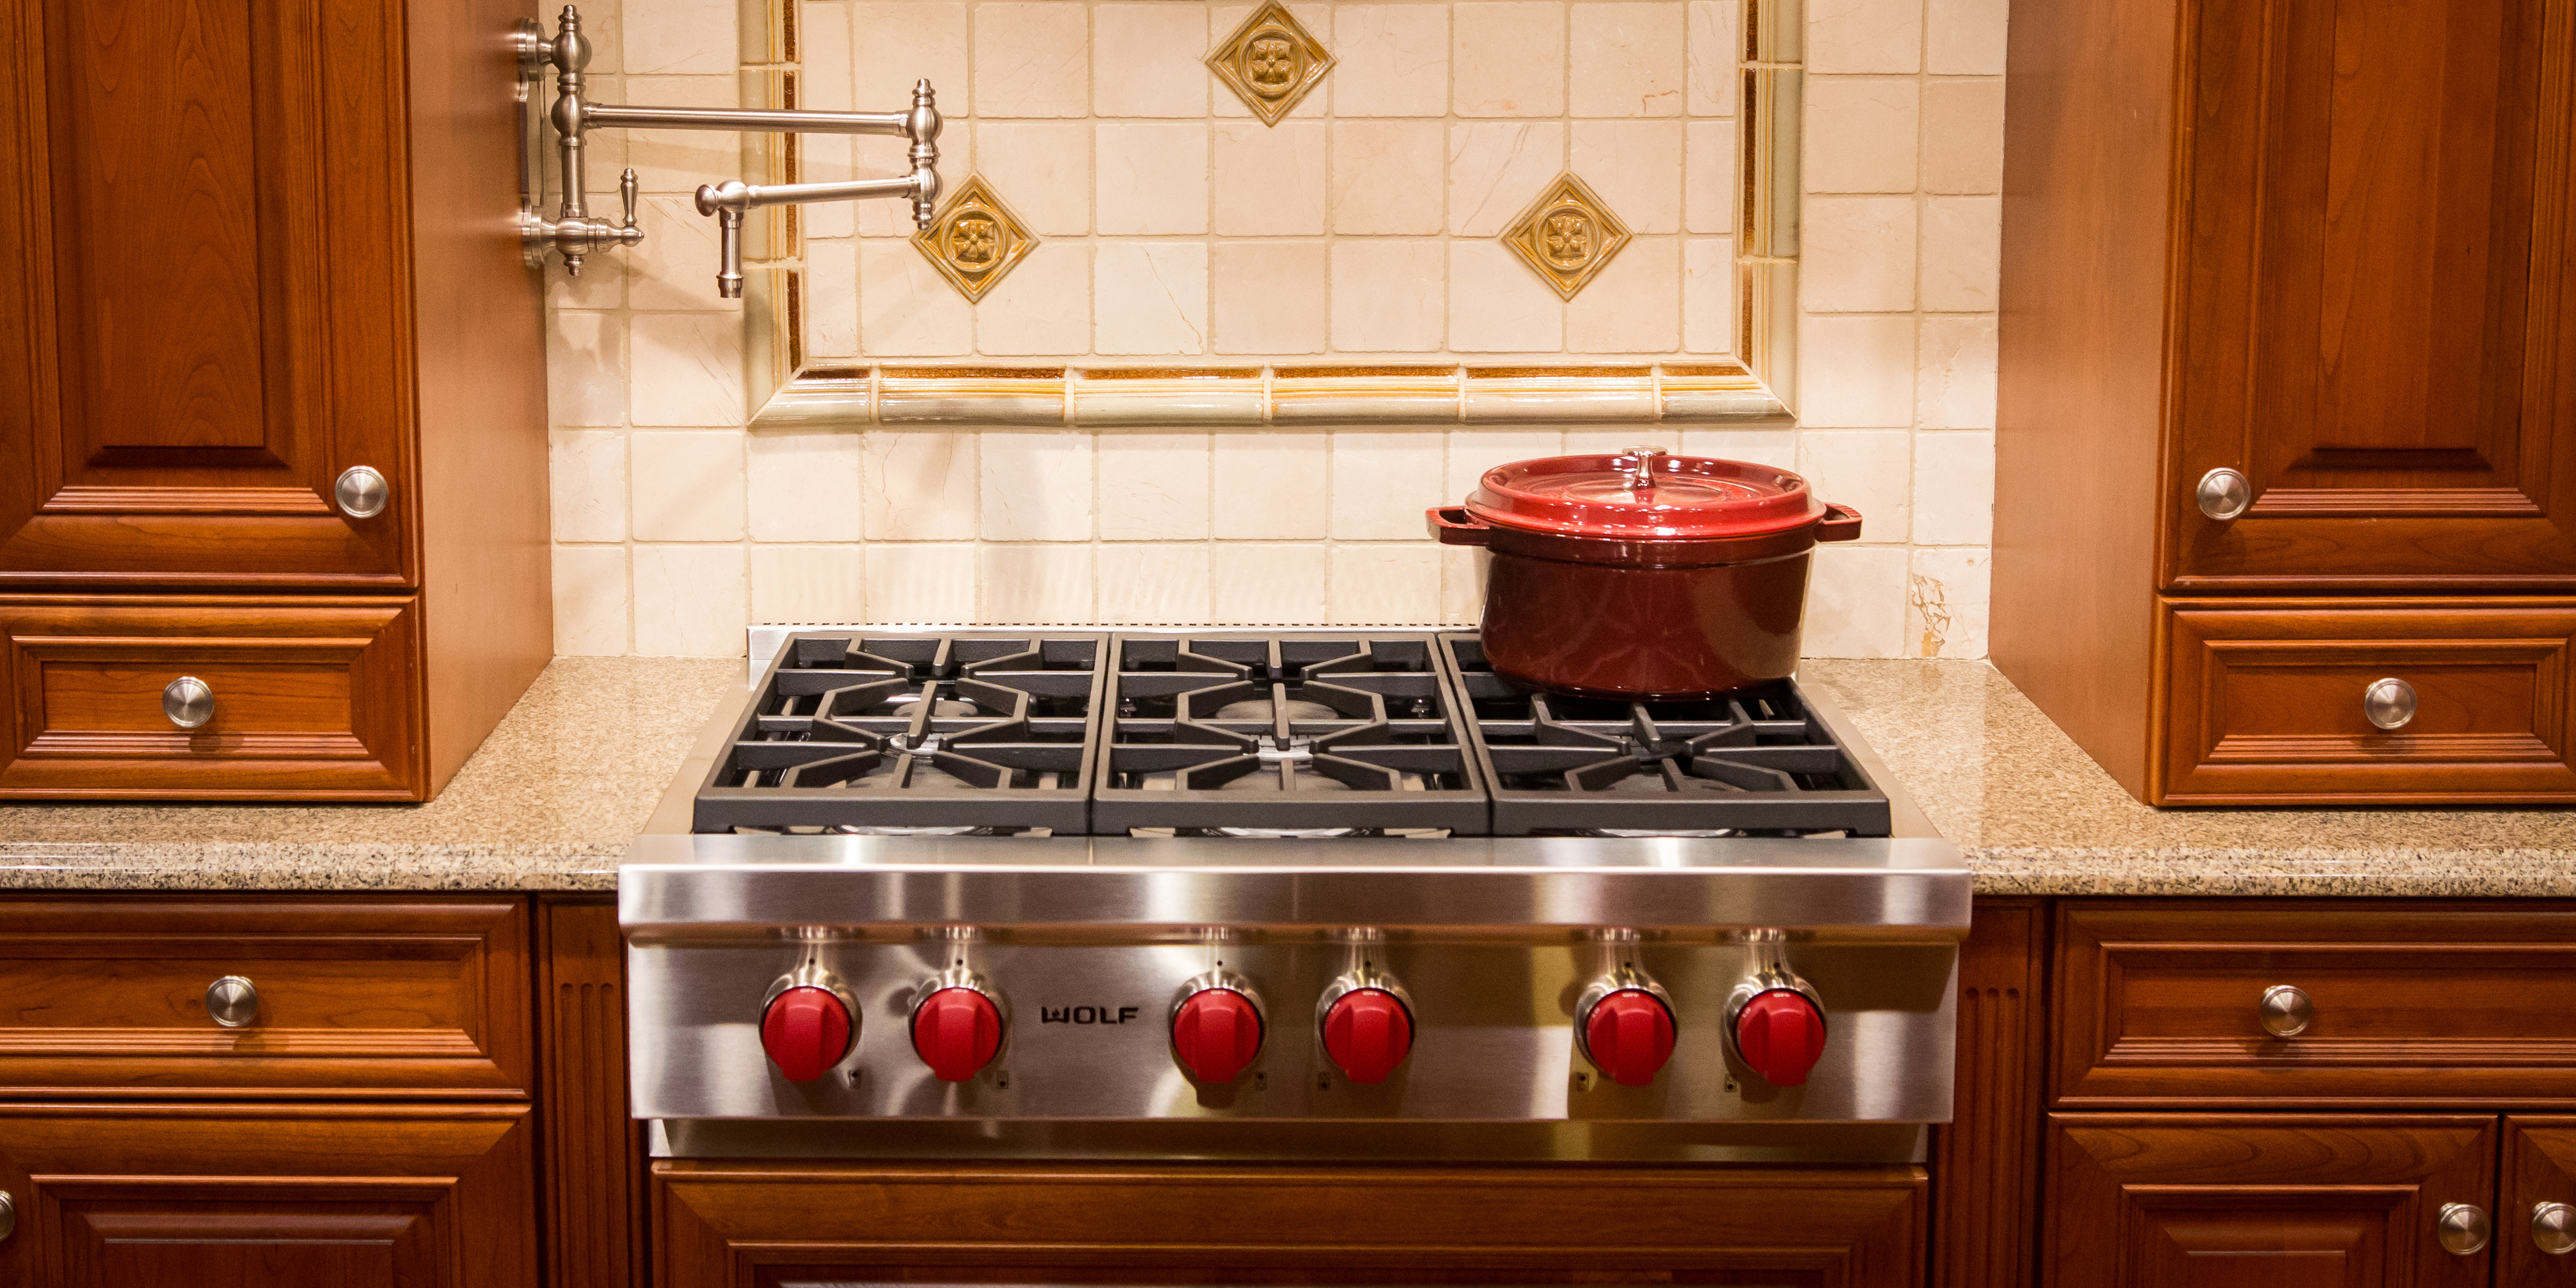 Wolf SRT366 36-Inch Gas Rangetop Review - Reviewed.com Luxury Home